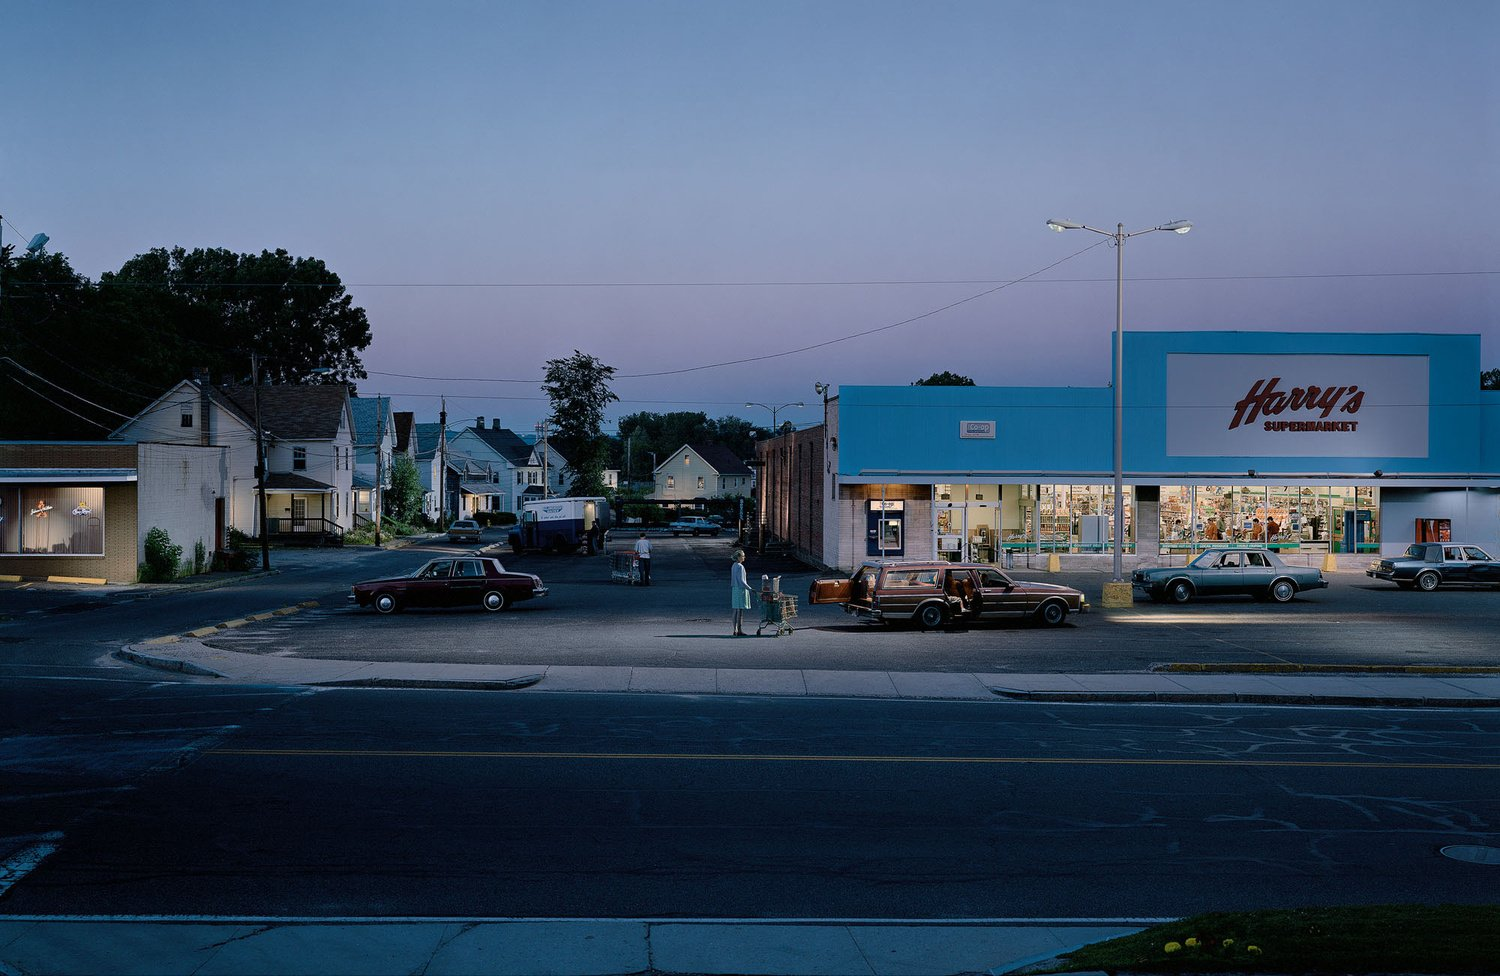 Supermercado Harry's Color Photography Gregory Crewdson